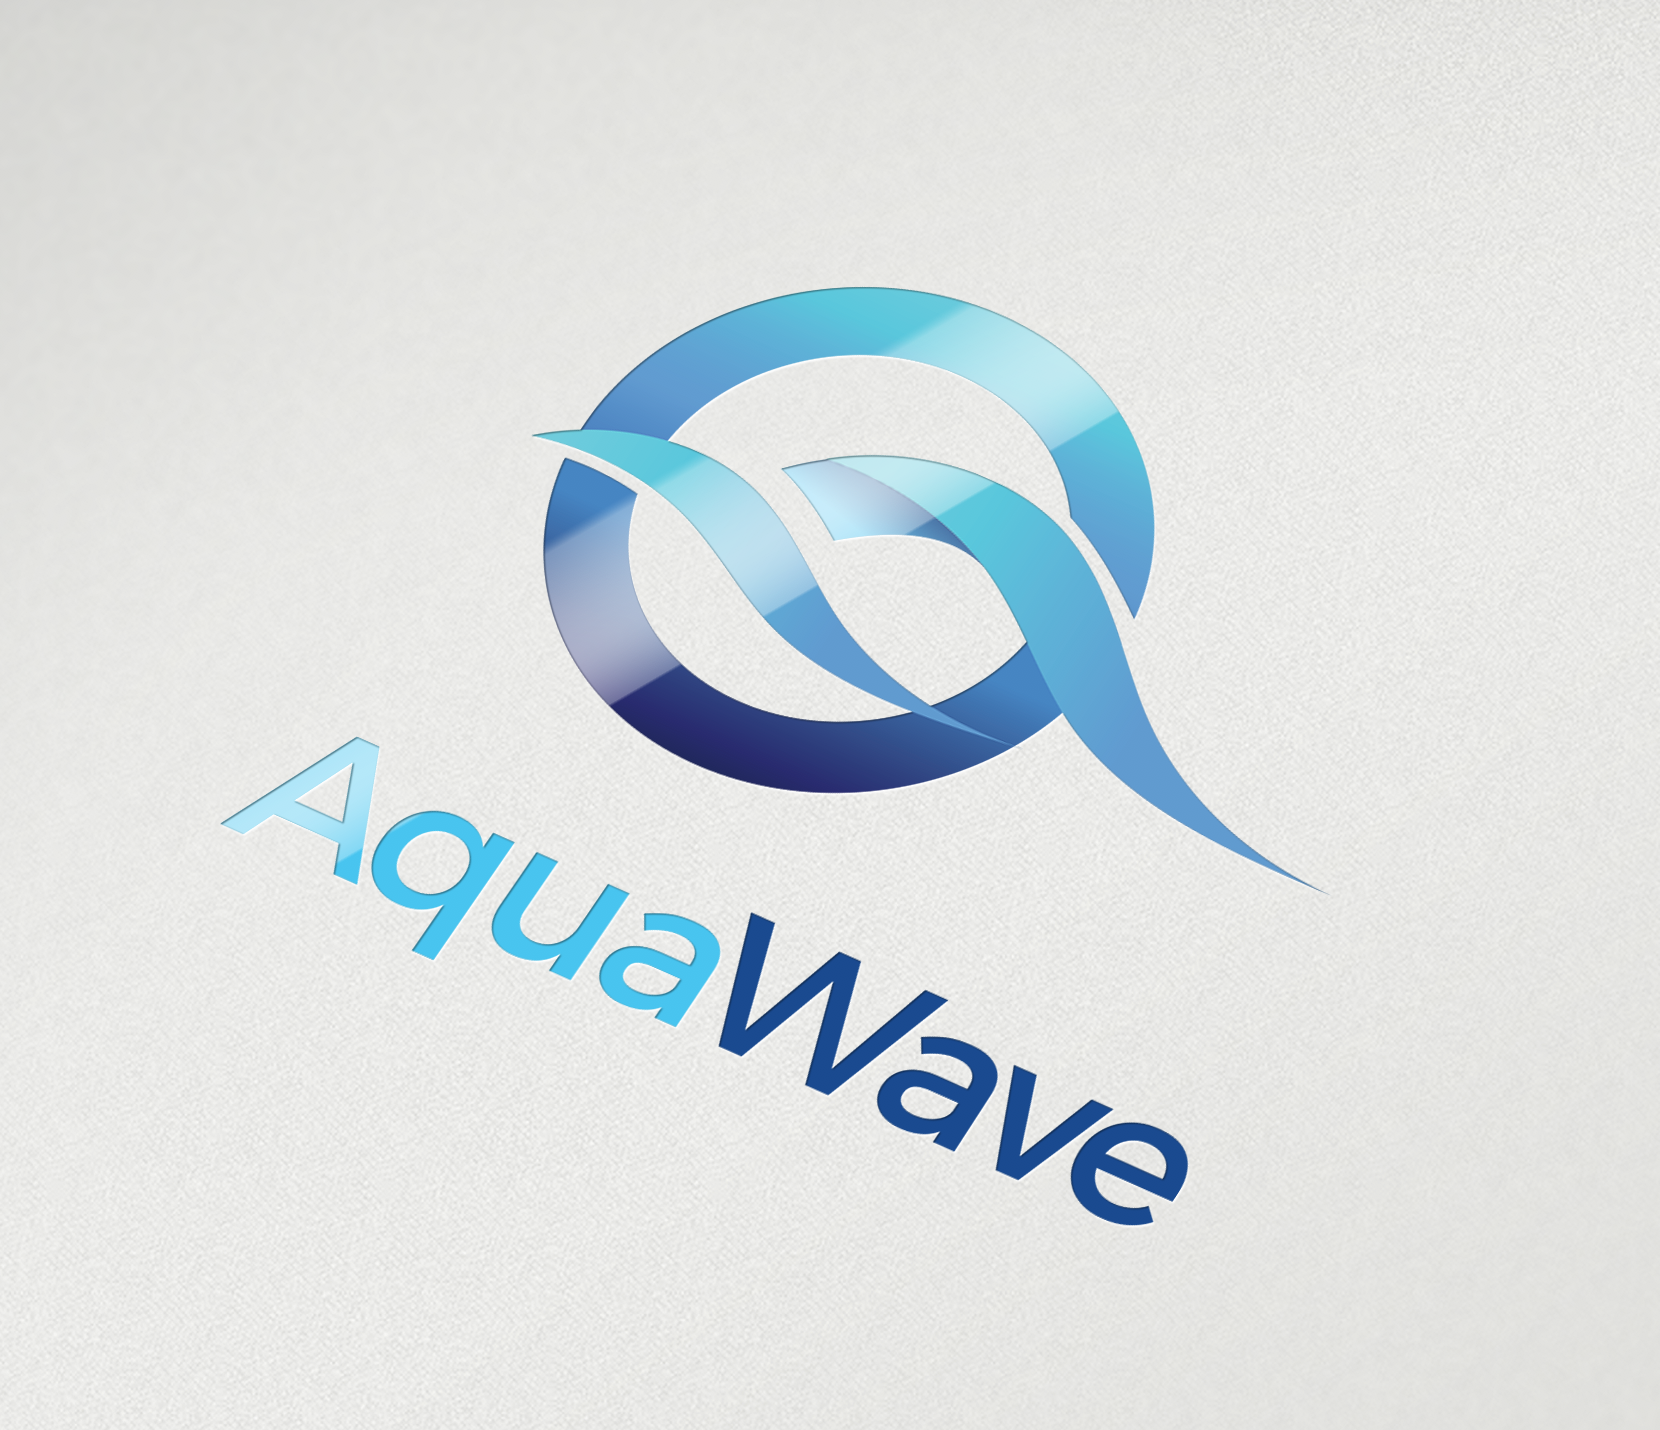 High-quality Logo Design For Affordable Price! This Logo